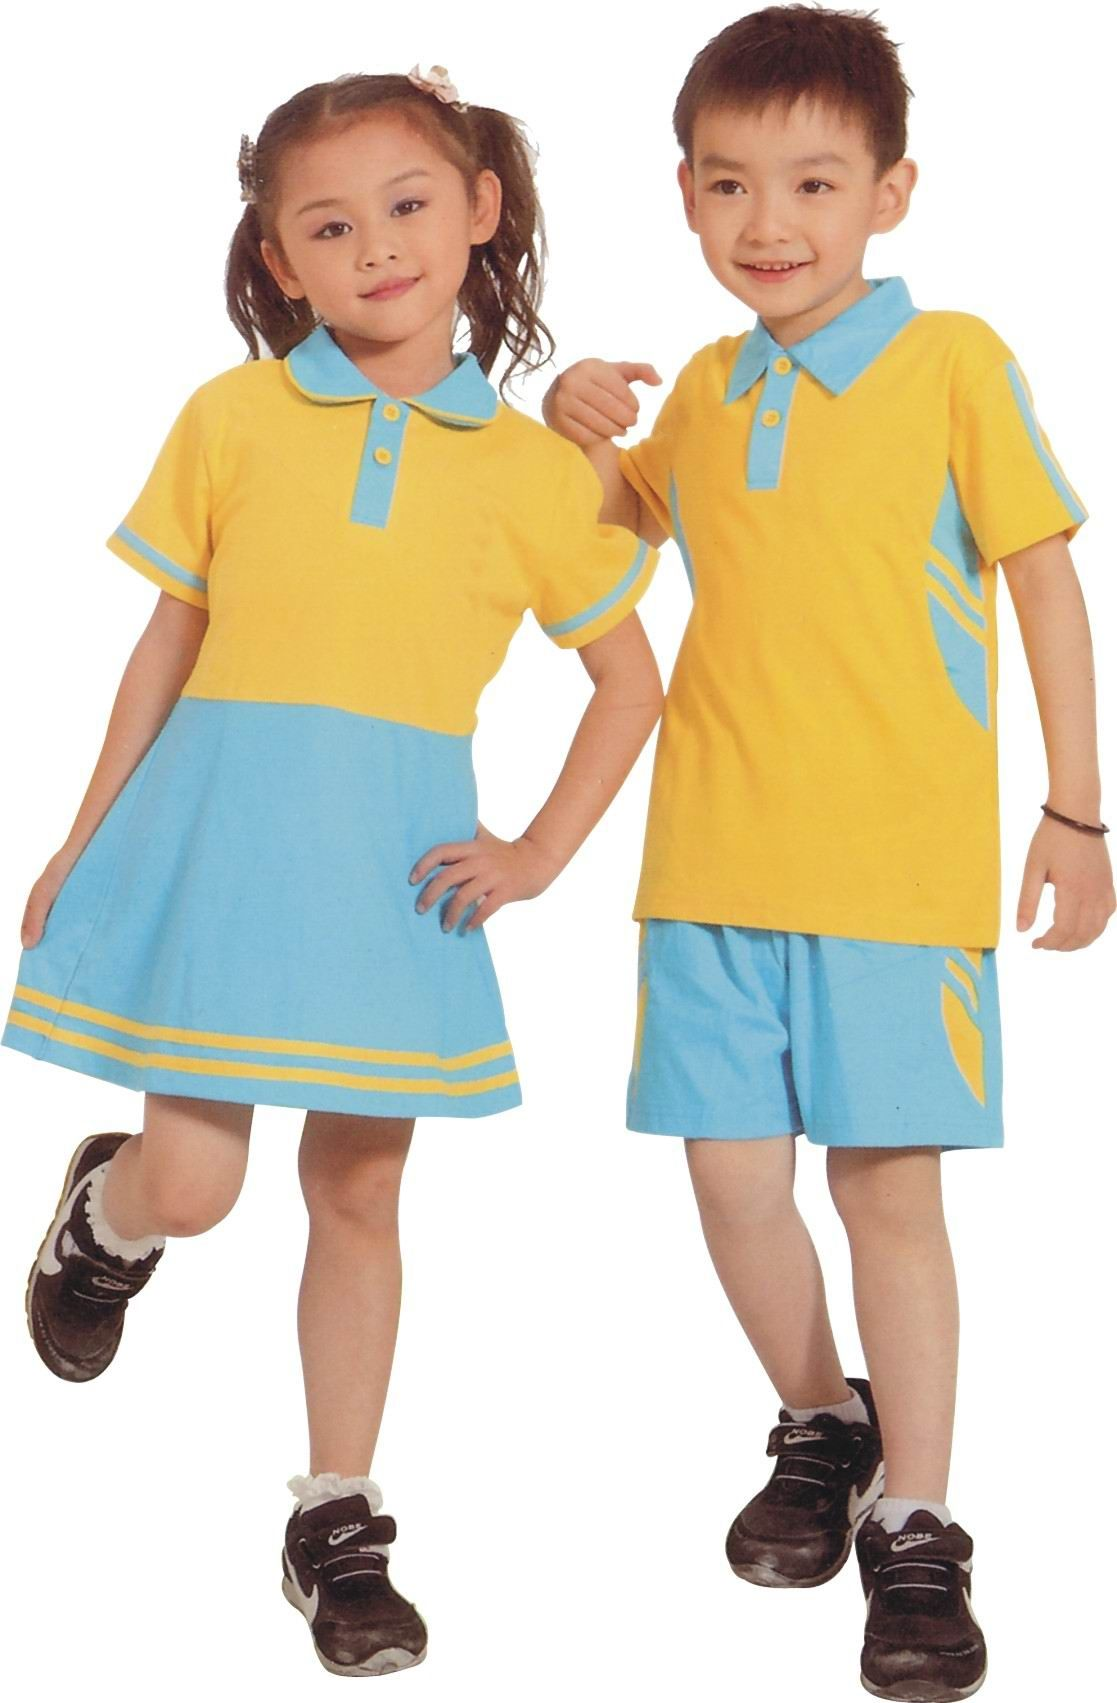 Primary School Uniform Su30 Kids Uniforms